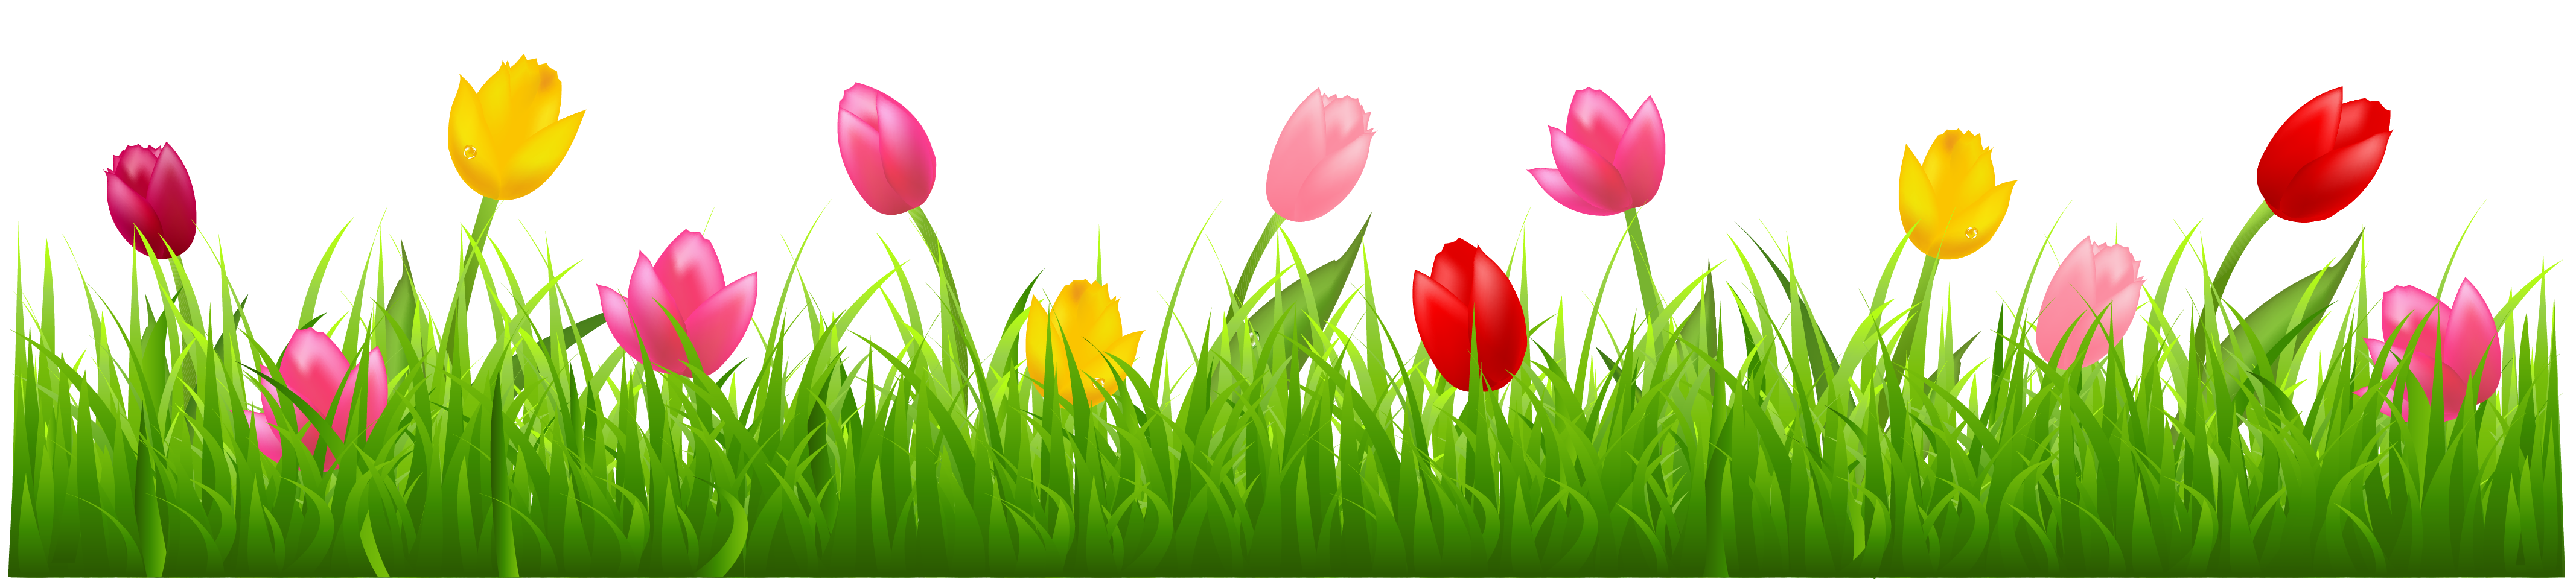 With colorful tulips png. Clipart grass cartoon